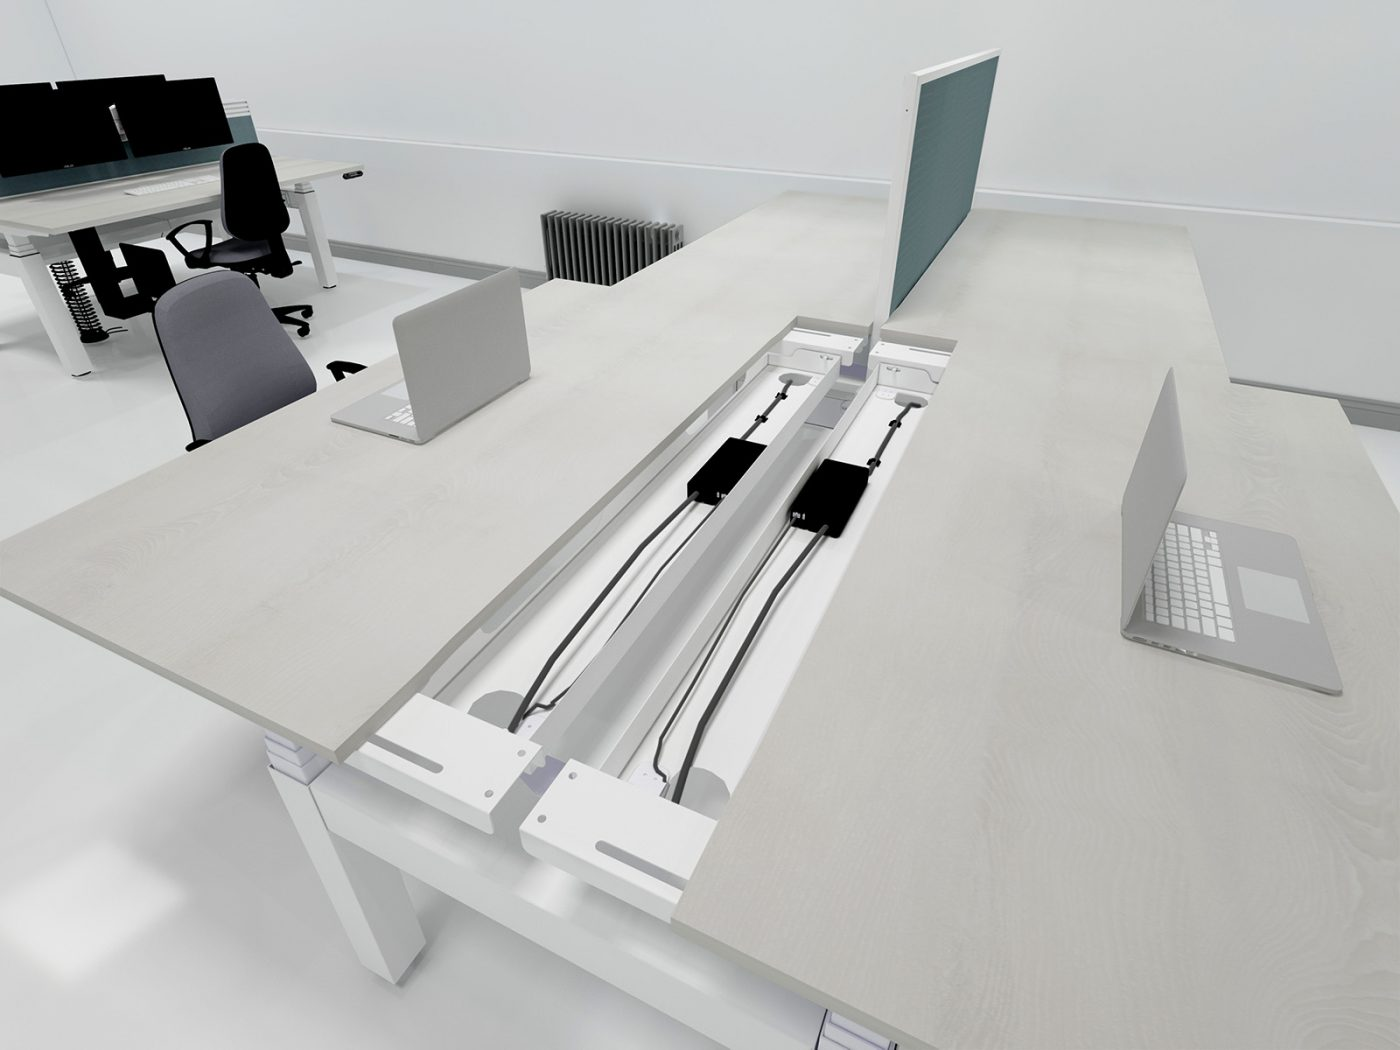 height adjustable, back-to-back desk, sliding tops, cable management, cable trays, dividing screen, desktop screen